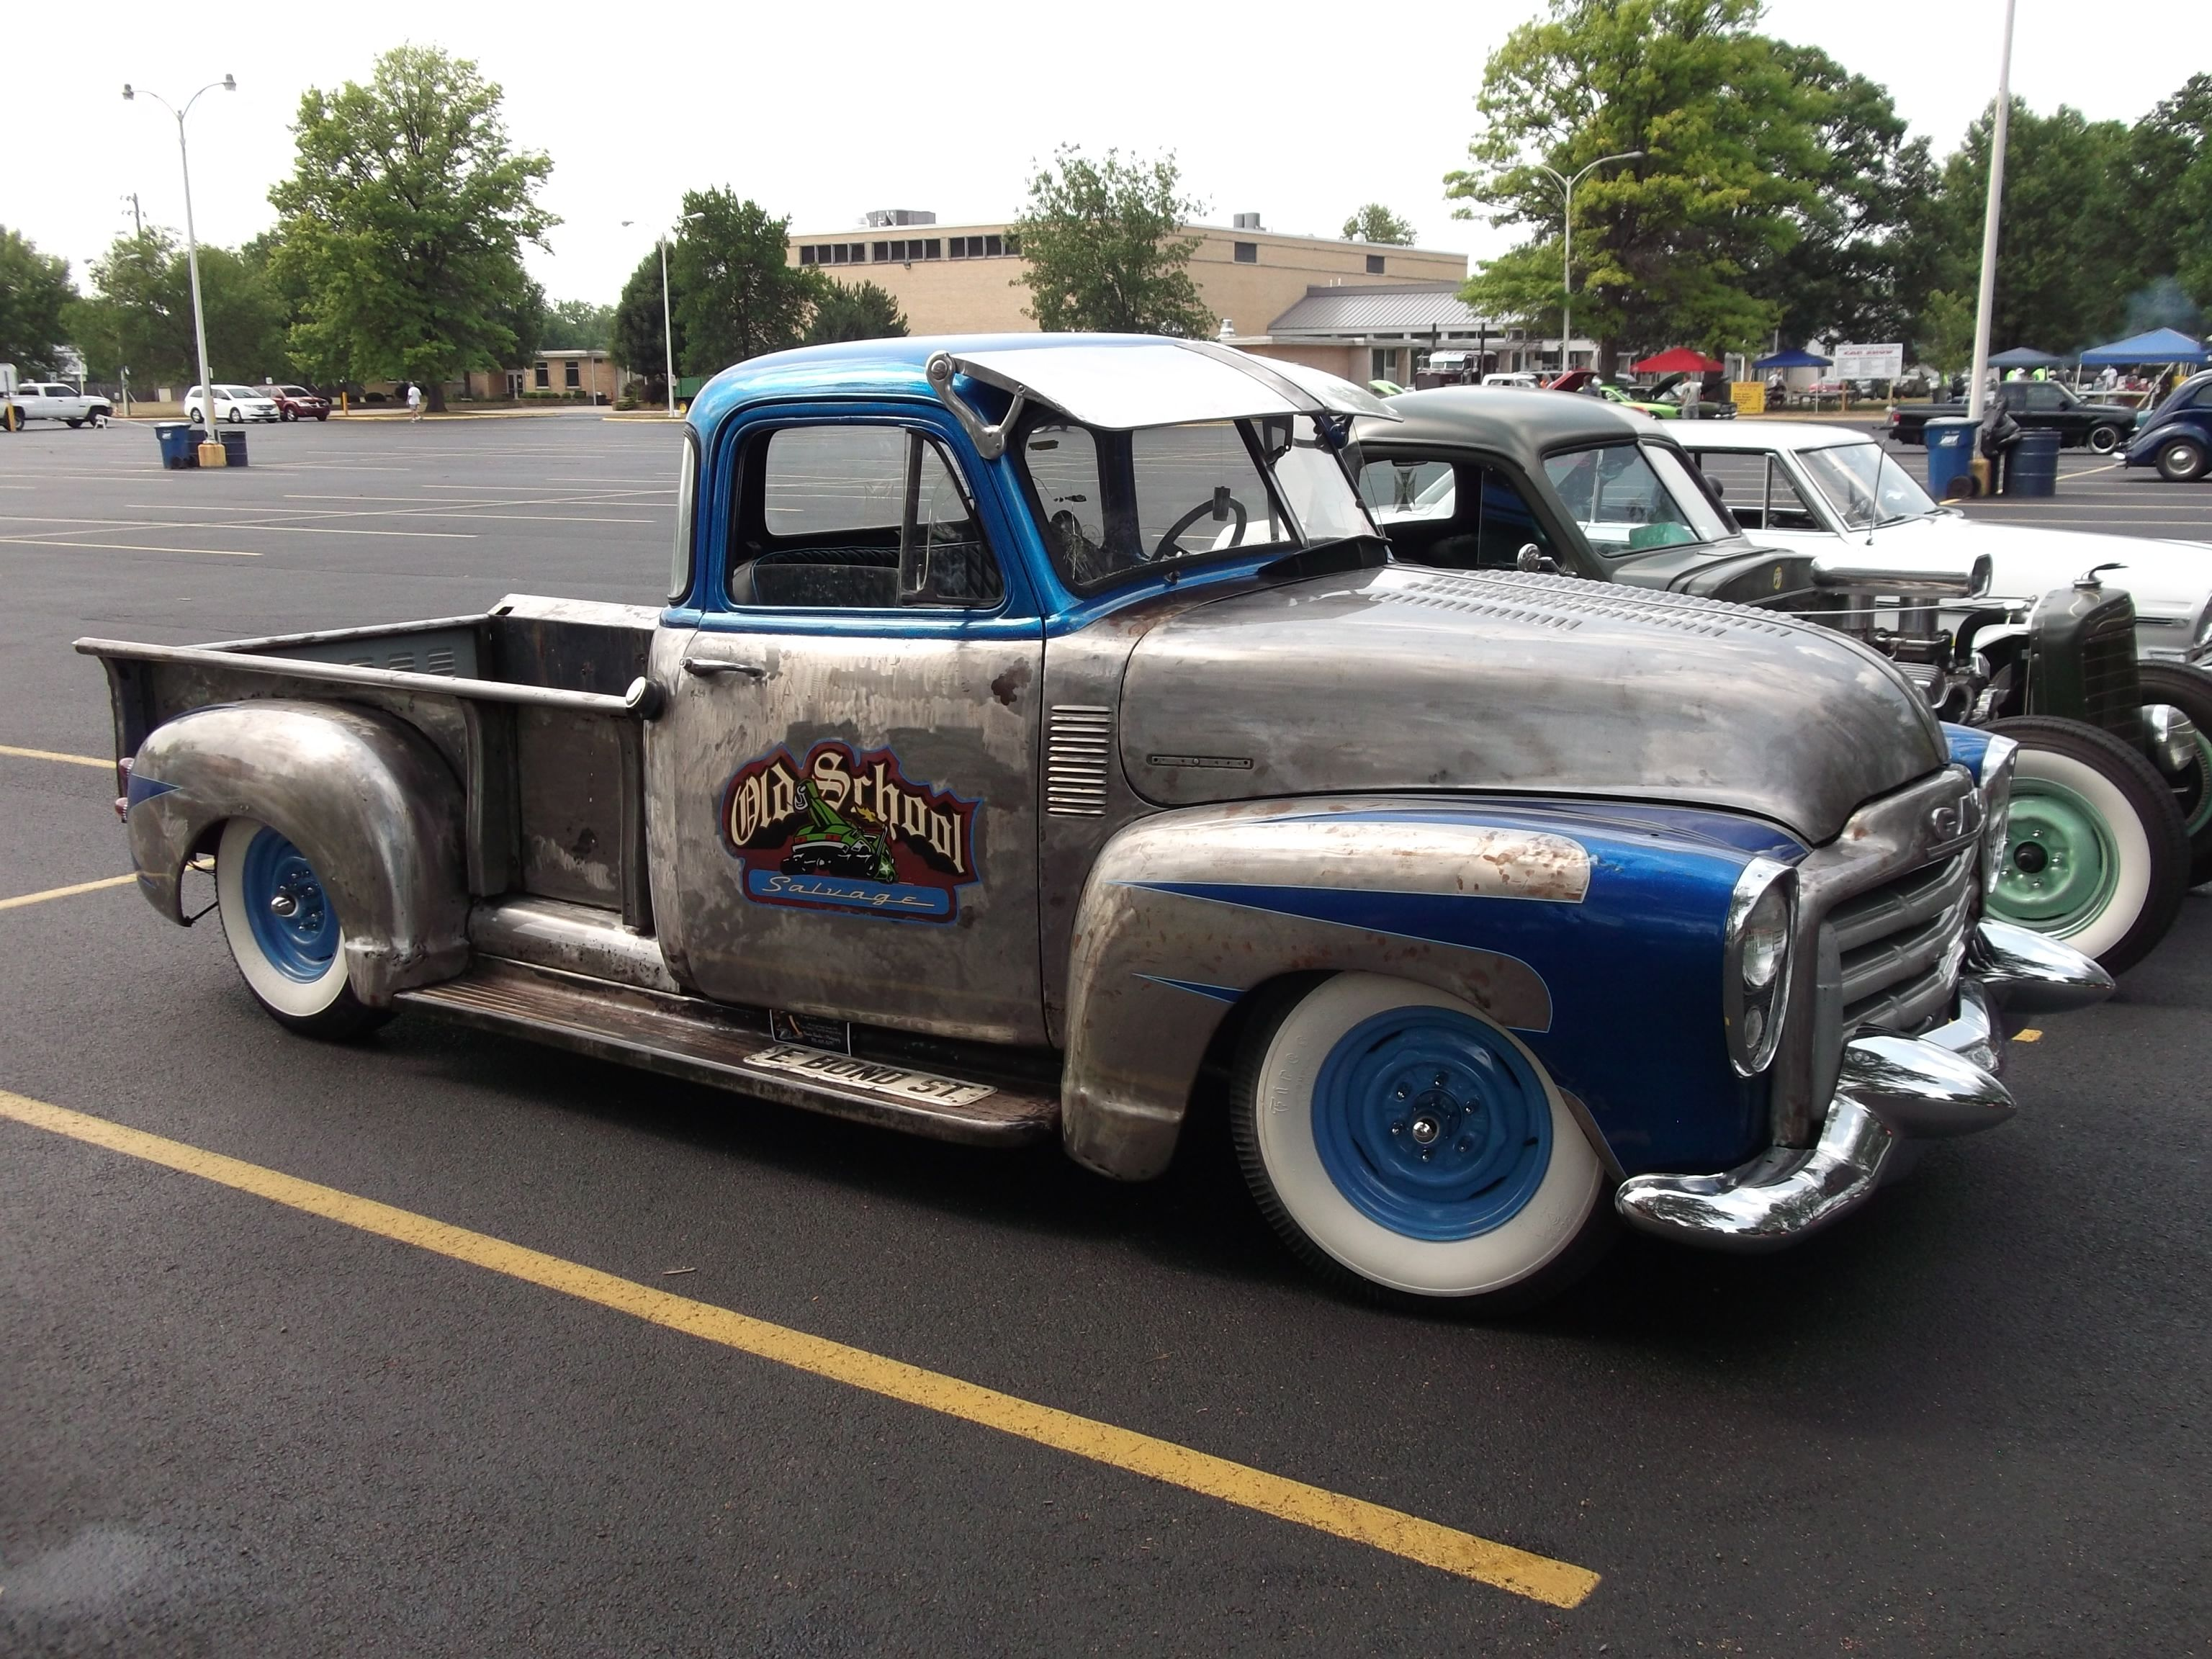 1955 chevrolet hot rod truck pictures to pin on pinterest - 1953 Gmc Rat Rod Truck I Want An Old Truck As A Tow Rig For